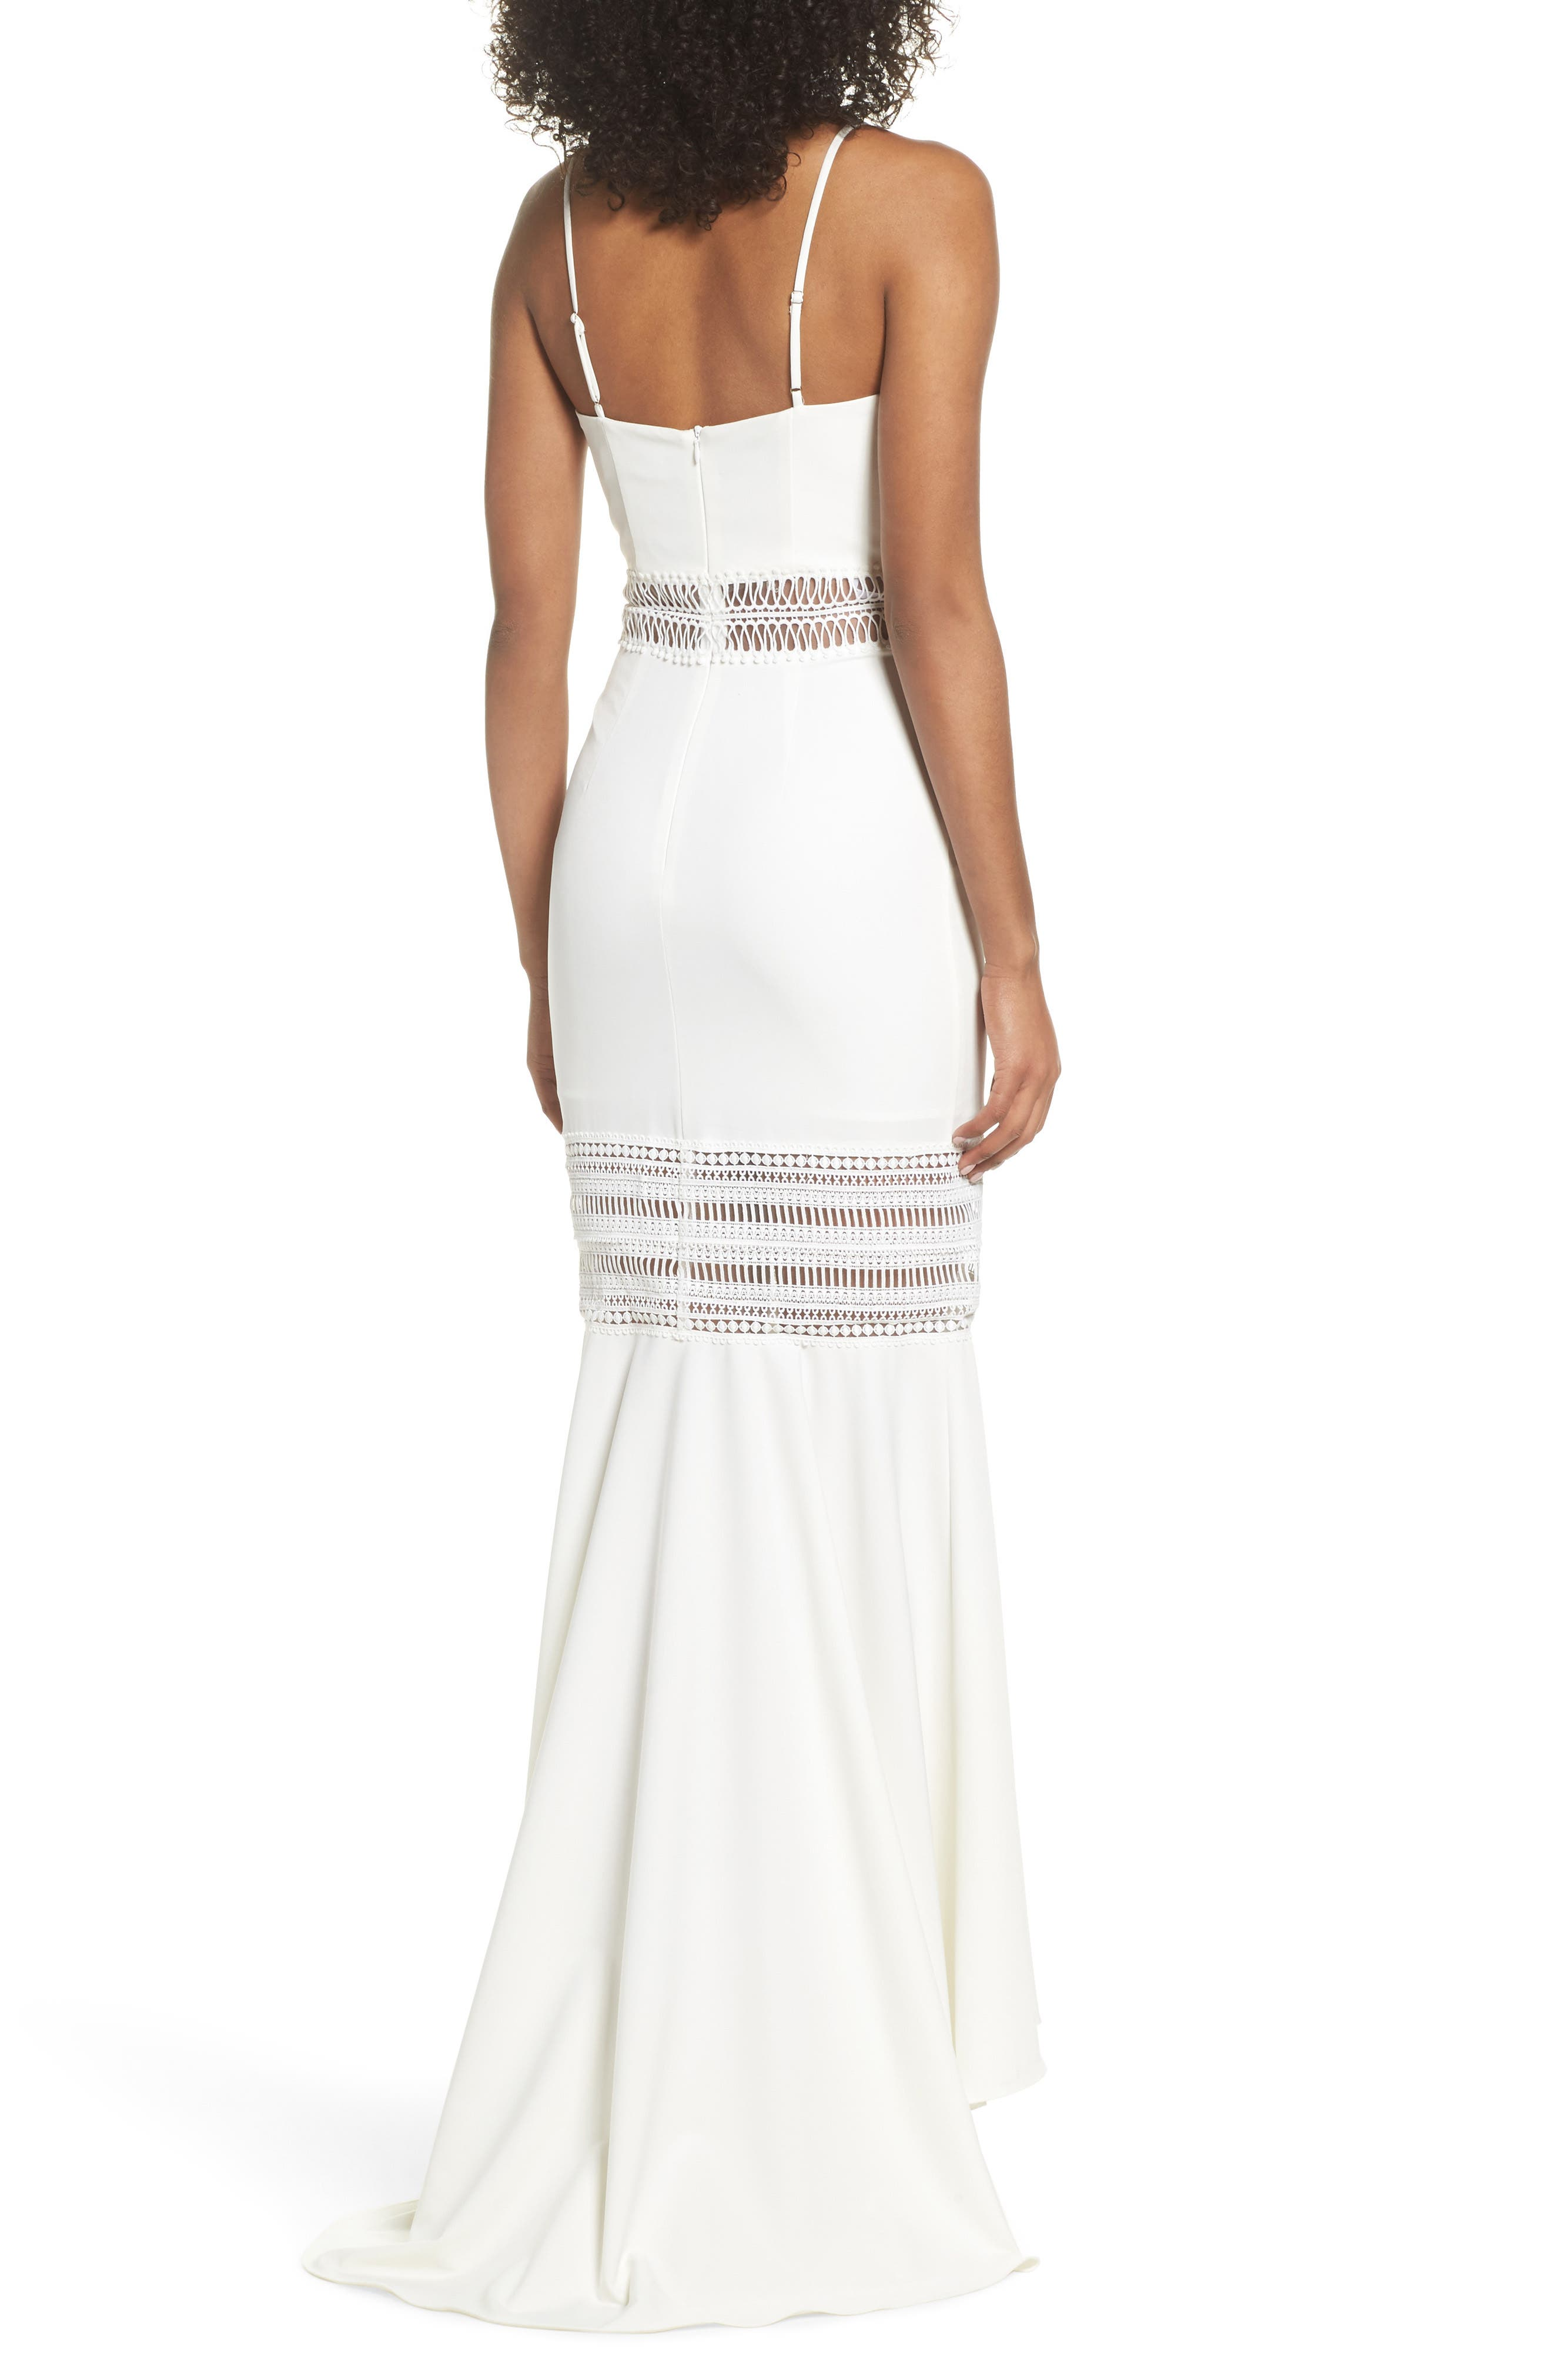 Clarity Openwork Inset Mermaid Gown,                             Alternate thumbnail 2, color,